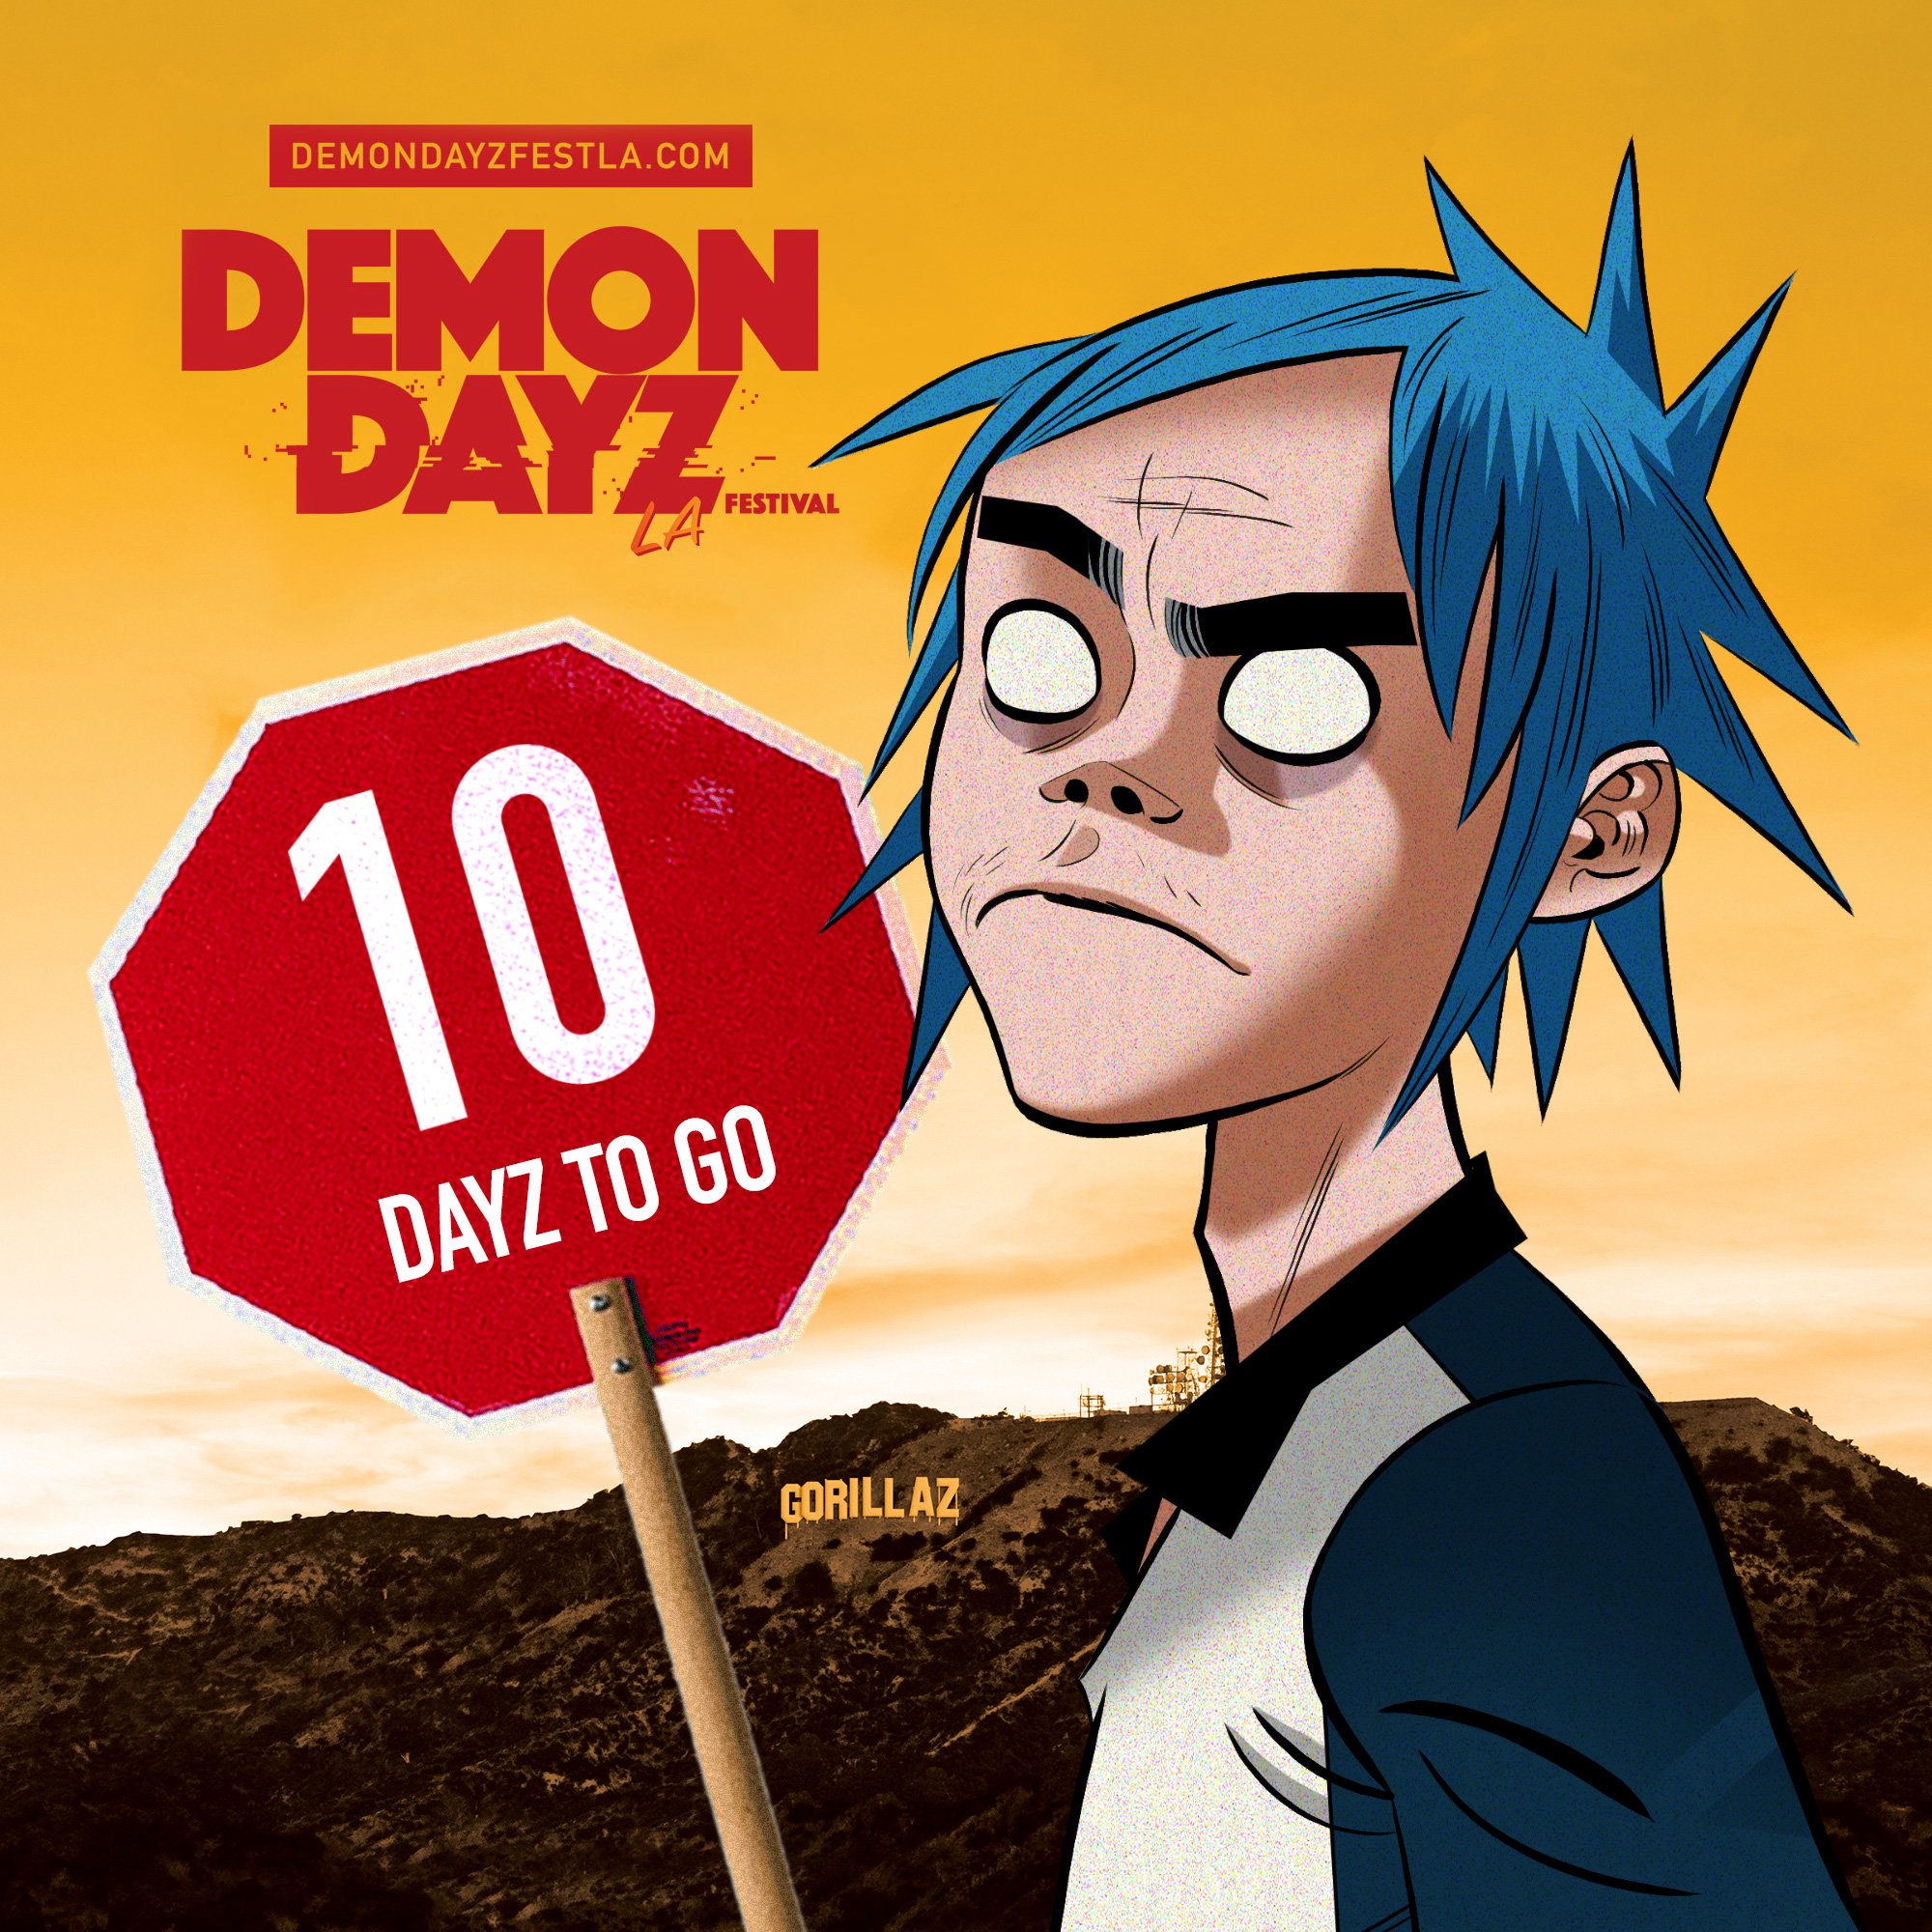 DEMON DAYZ FESTIVAL: THE COUNTDOWN HAS BEGUN